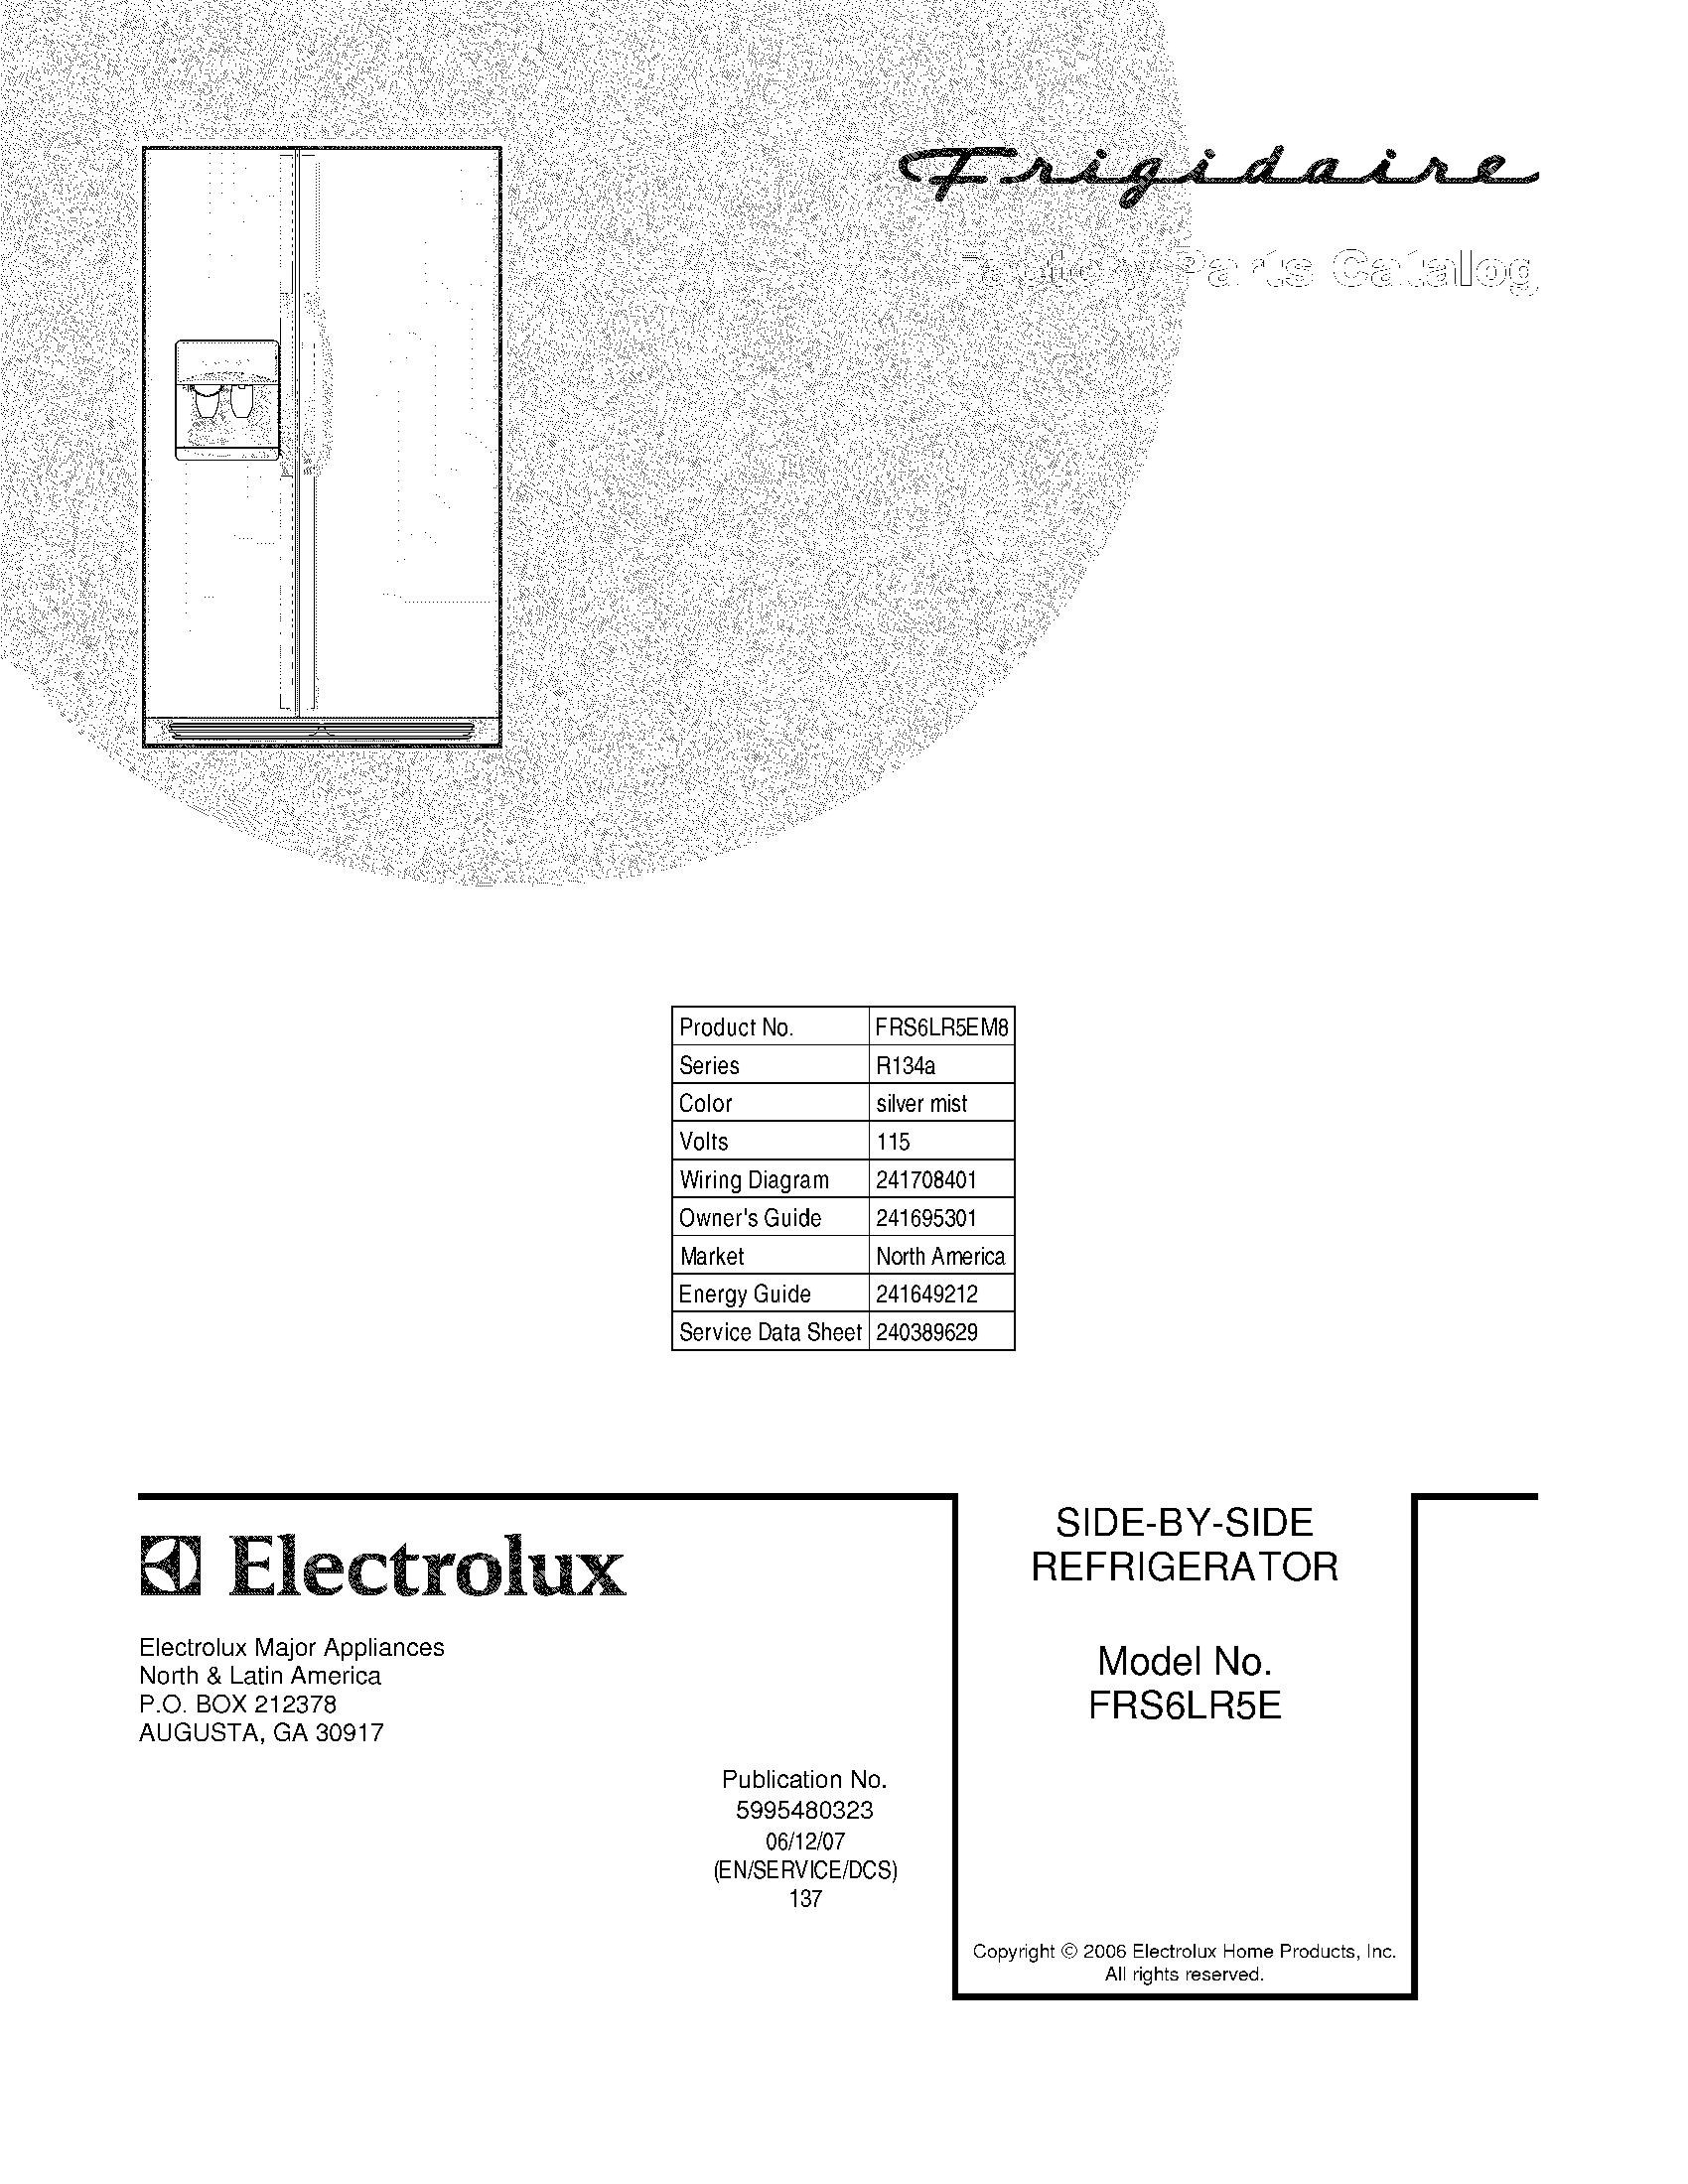 ElectroluxImg_19000101 20150717_00097035?width\=1000 frigidaire air handler wiring diagrams payne air handler wiring Basic Electrical Wiring Diagrams at mifinder.co